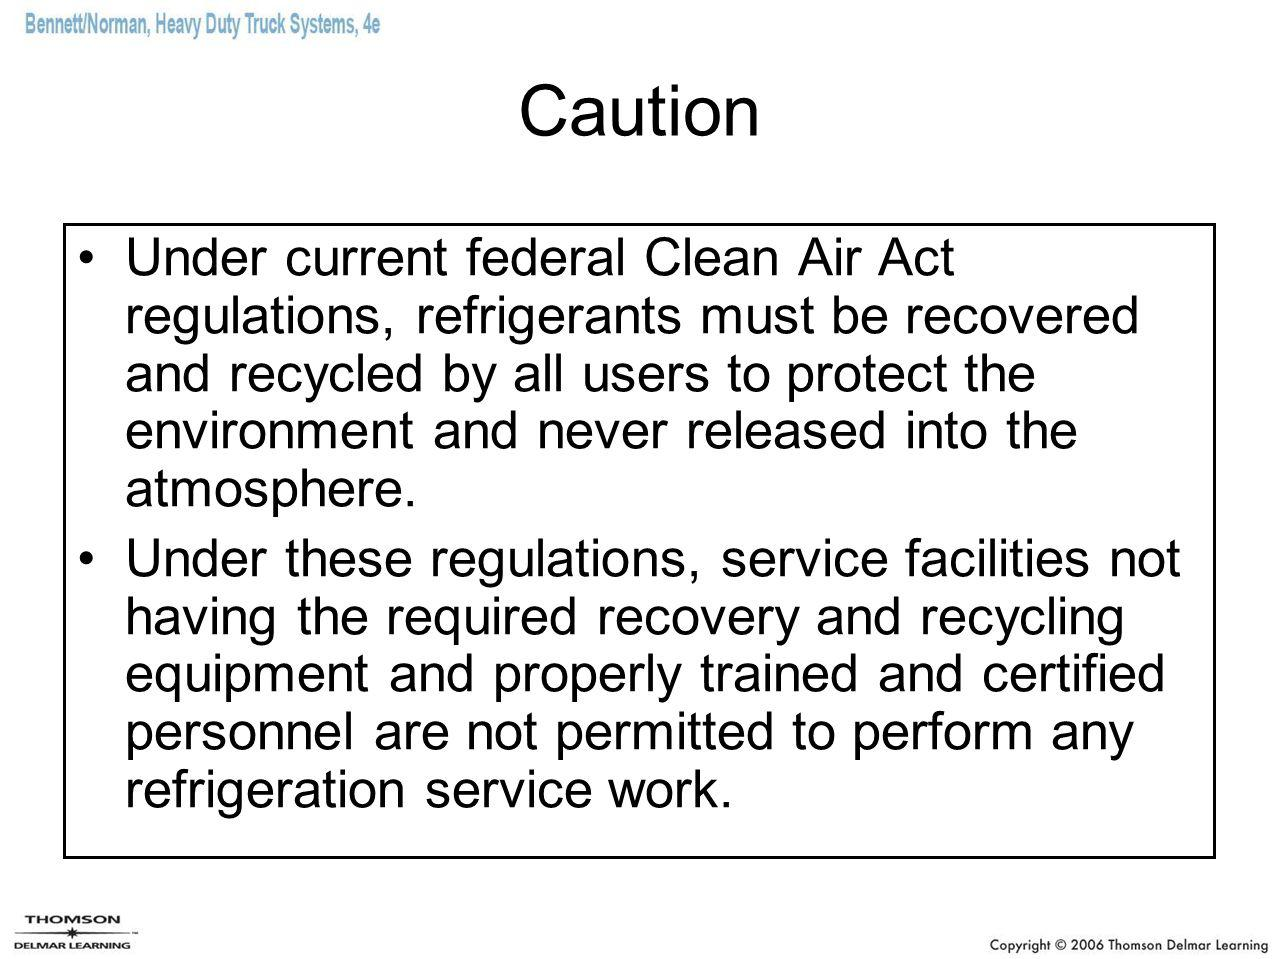 Caution Under current federal Clean Air Act regulations, refrigerants must be recovered and recycled by all users to protect the environment and never